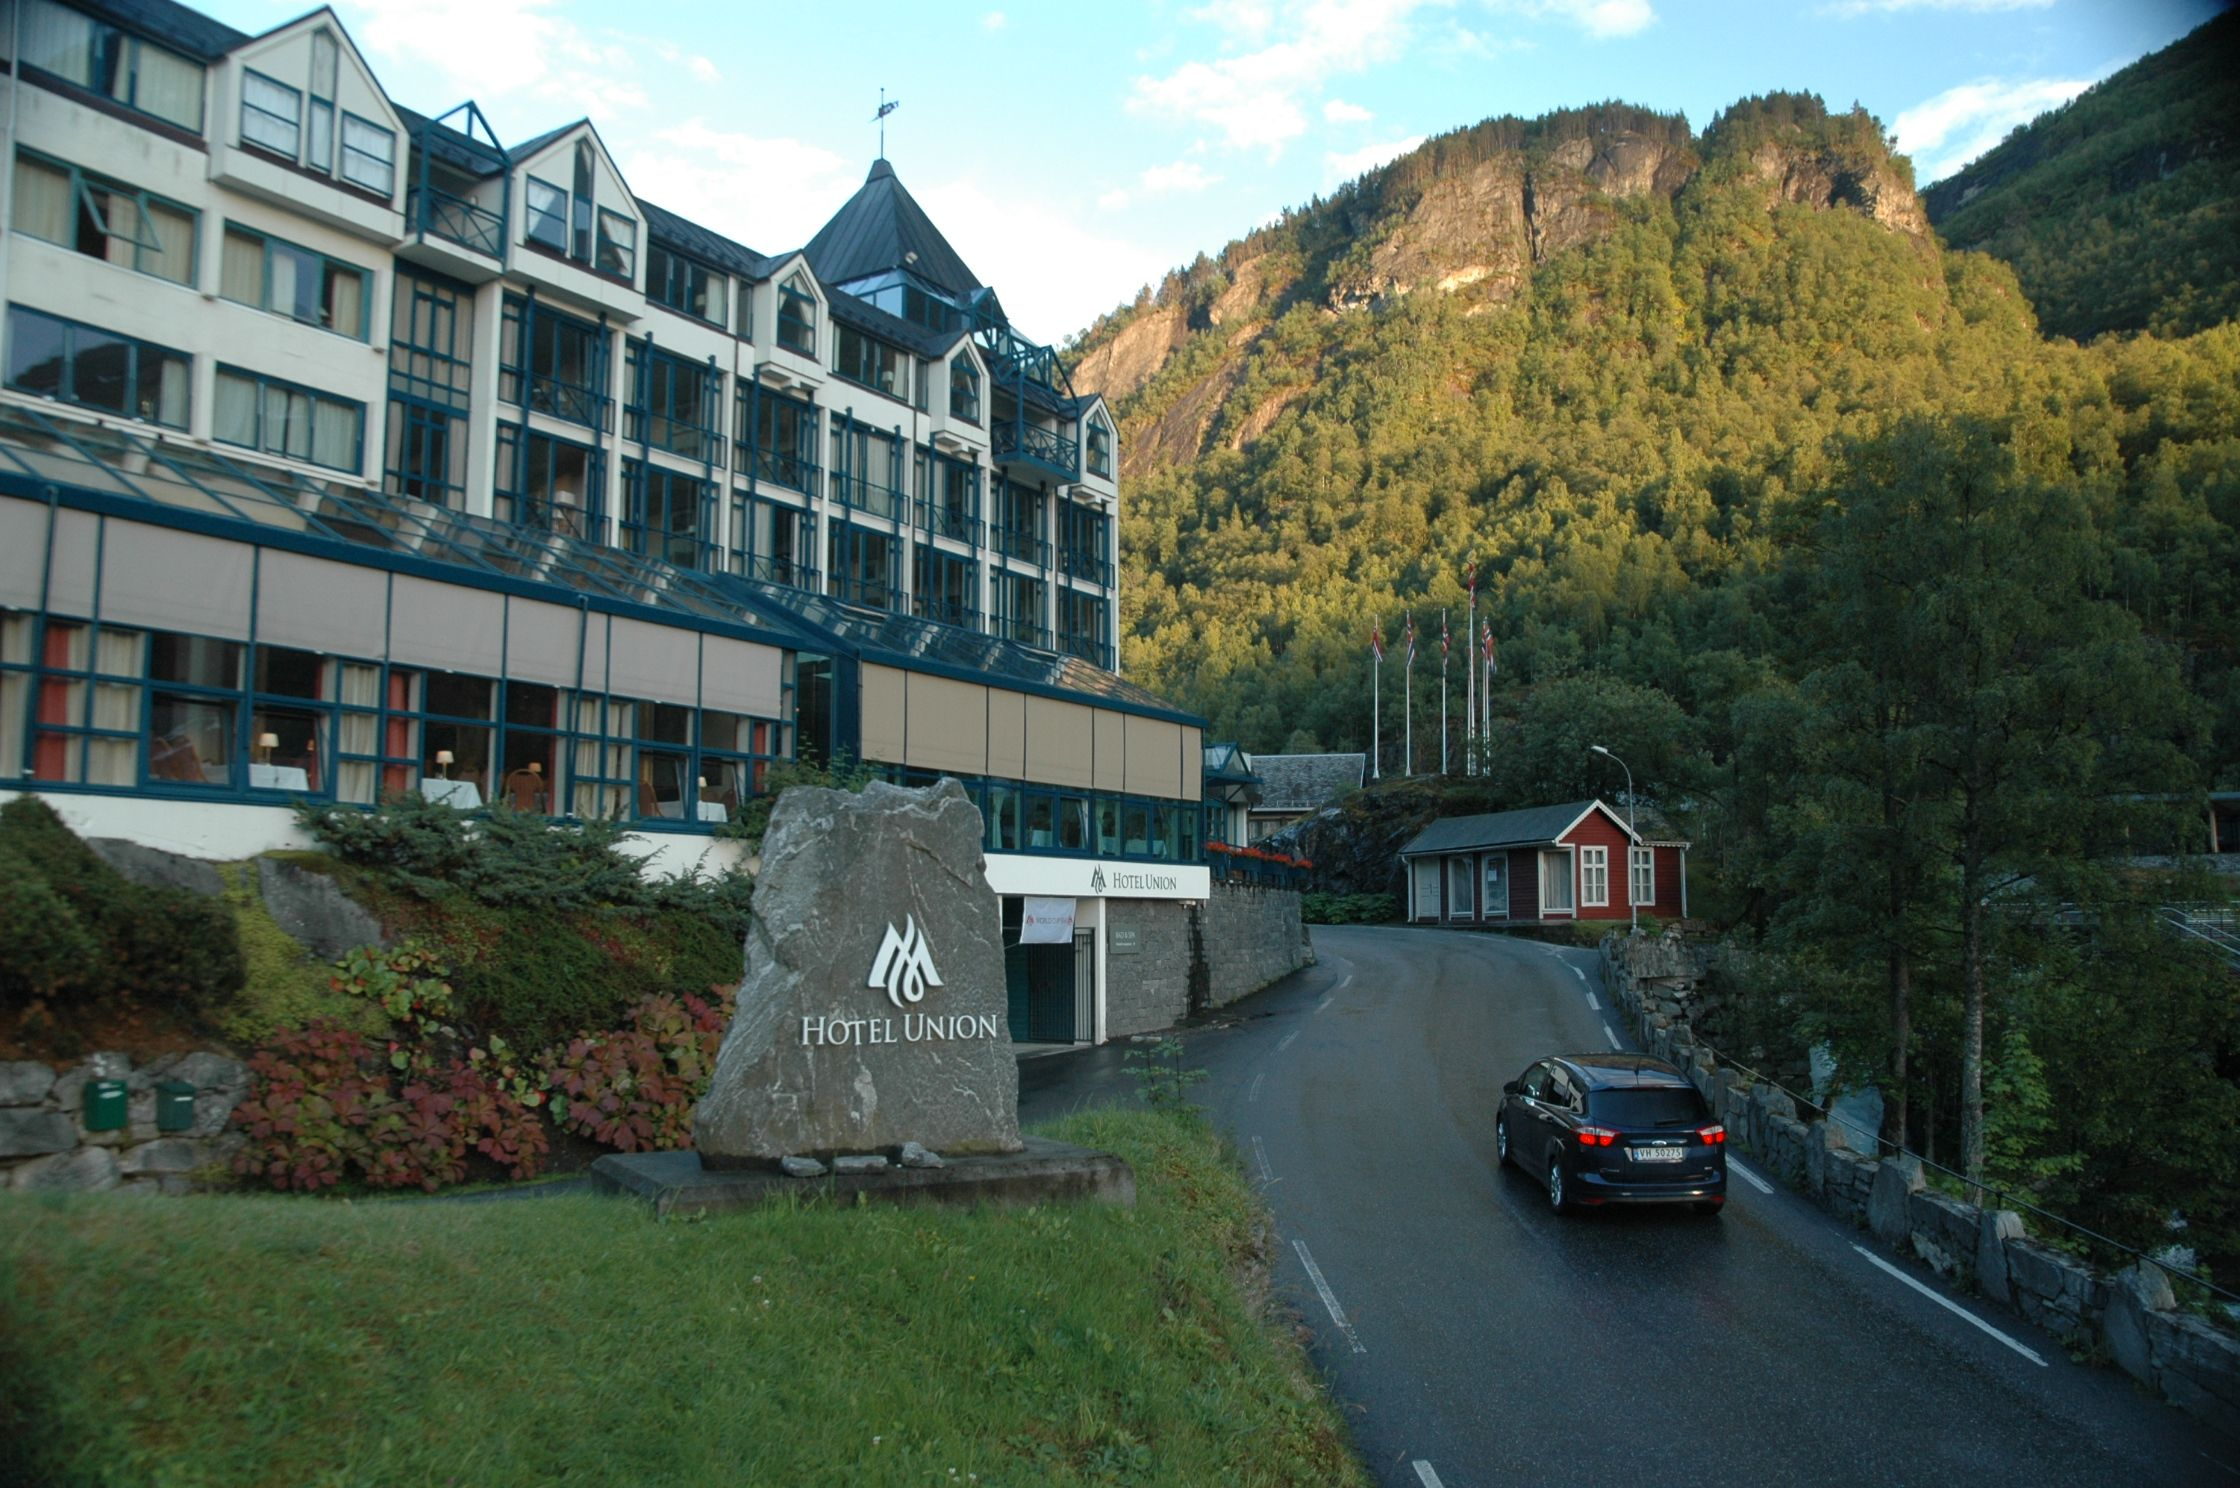 #Hotel_Union in #Geiranger Norway